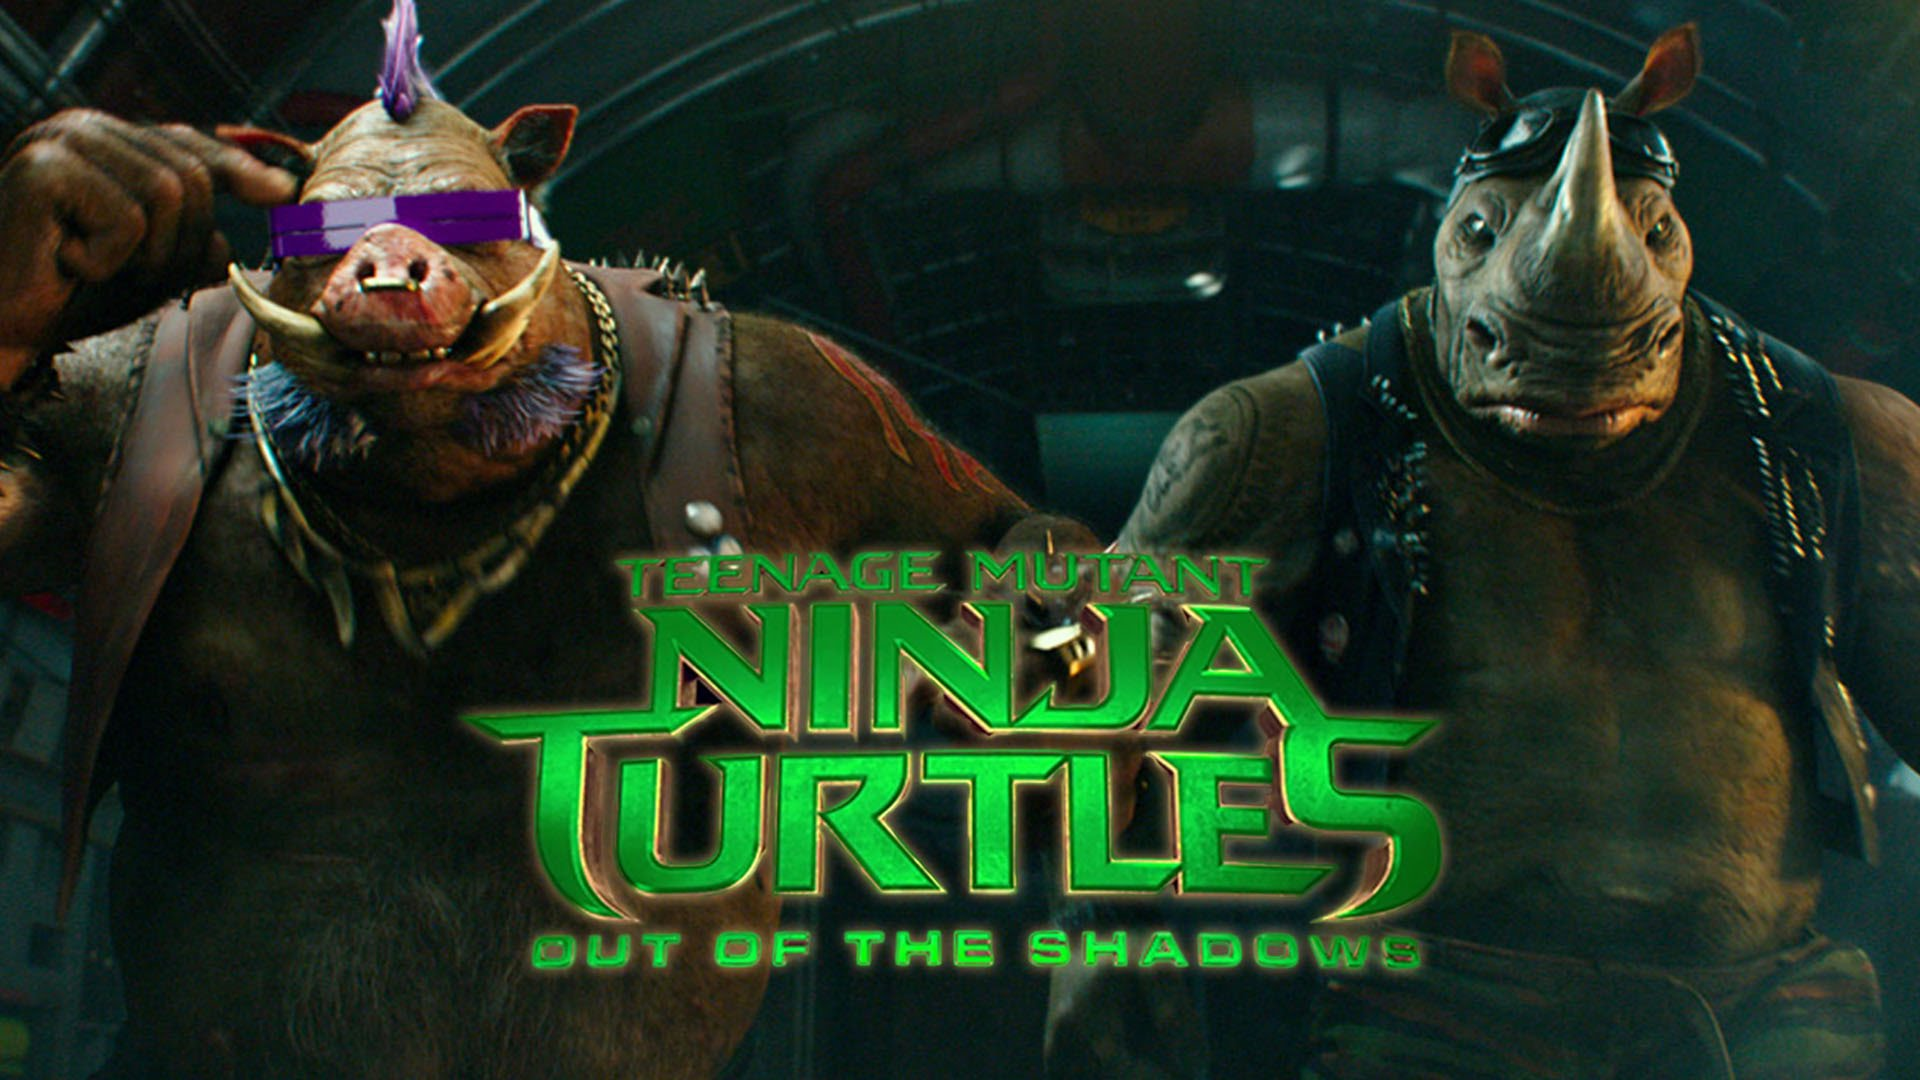 Teenage Mutant Ninja Turtles: Out of the Shadows Movie Review & Rating